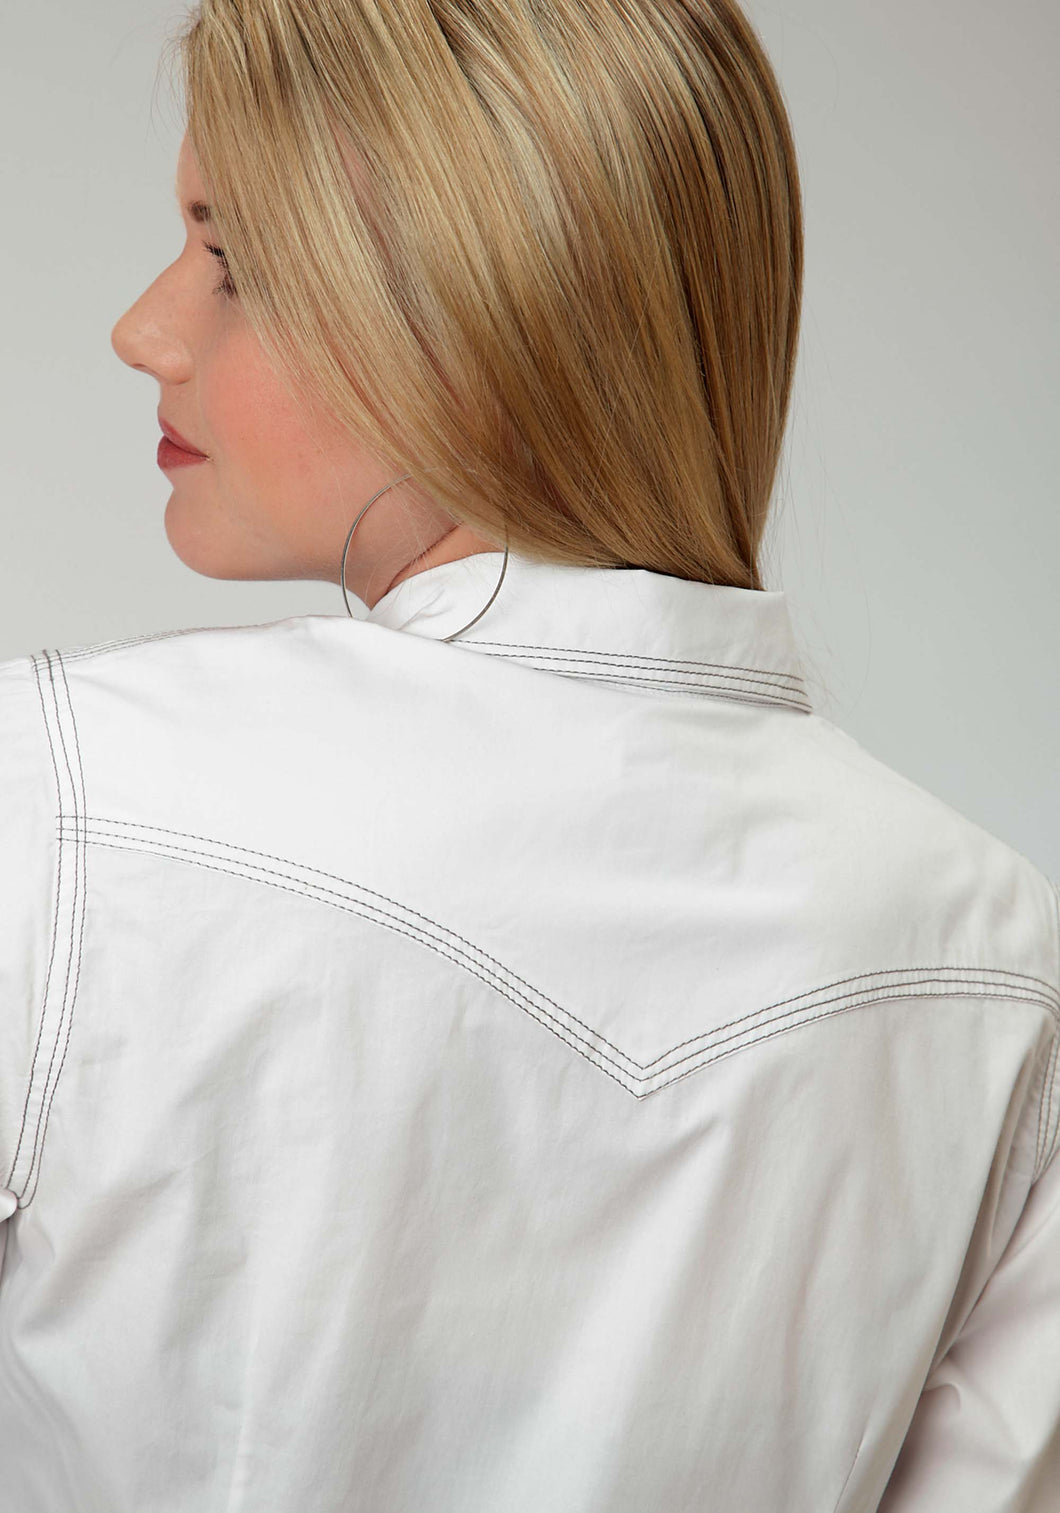 Performance Collection Westm Womens Long Sleeve Shirt 0855 Solid White Poplin